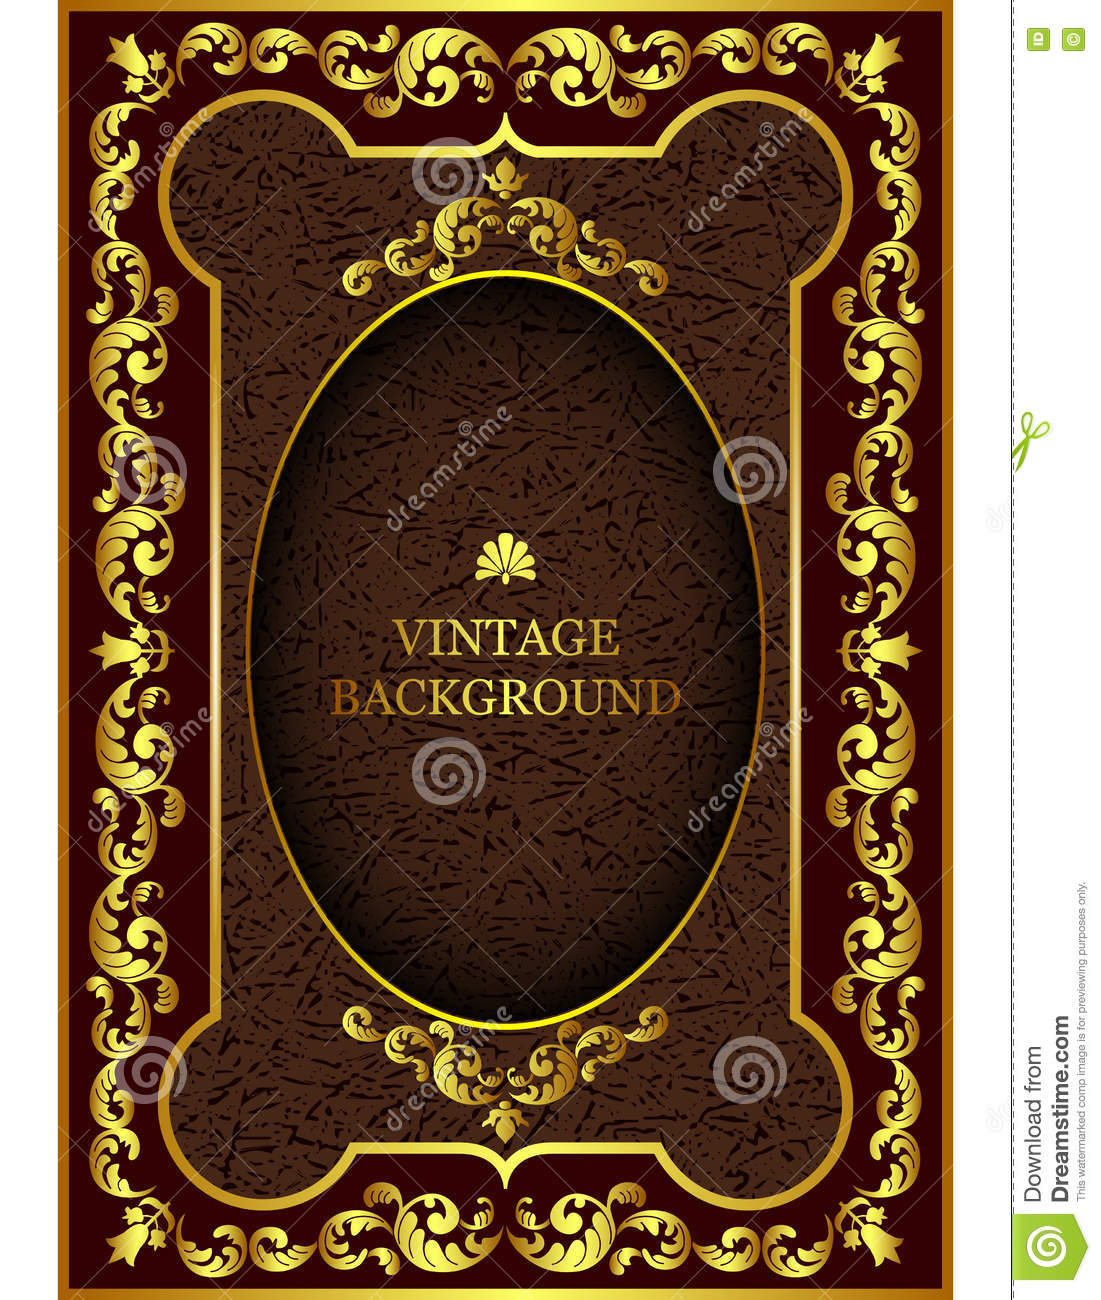 Old Book Cover Vector : Old worn book cover with ornamental pattern stock